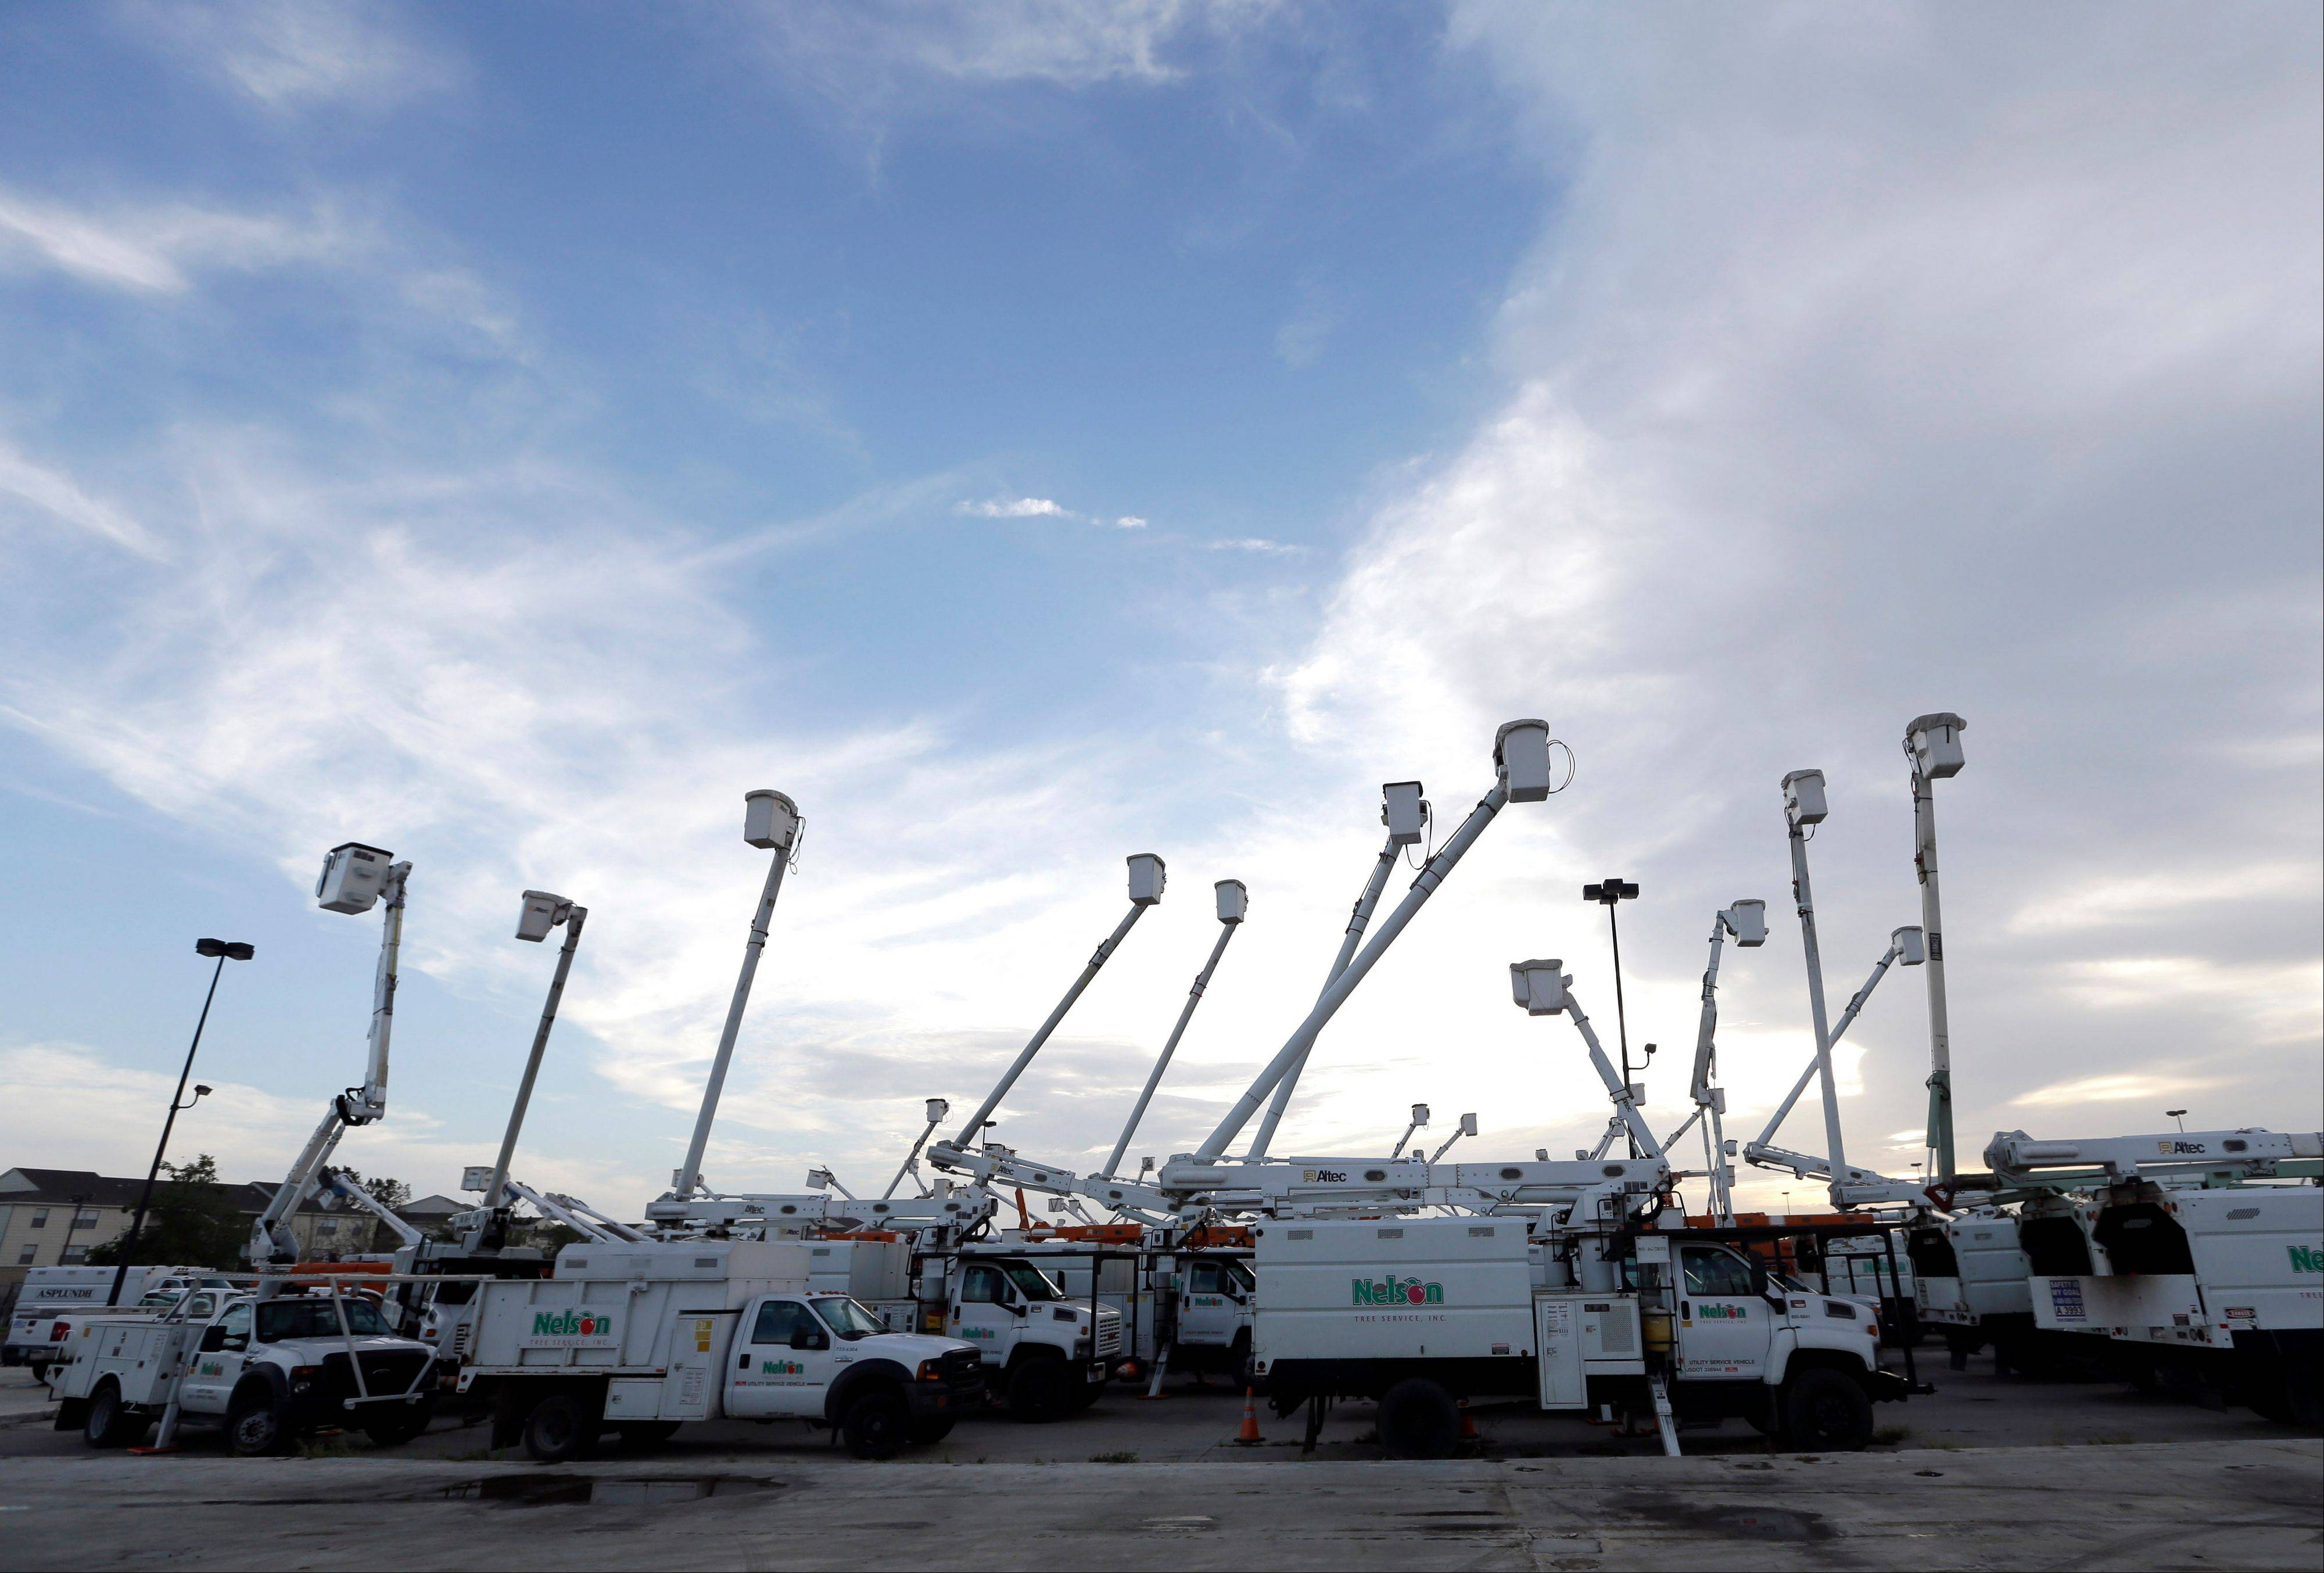 Utility trucks stage outside New Orleans as recovery efforts after Hurricane Isaac continue in New Orleans, Friday, Aug. 31, 2012. Isaac is now a tropical depression and the center was on track to cross Arkansas on Friday and southern Missouri on Friday night, spreading rain as it goes.